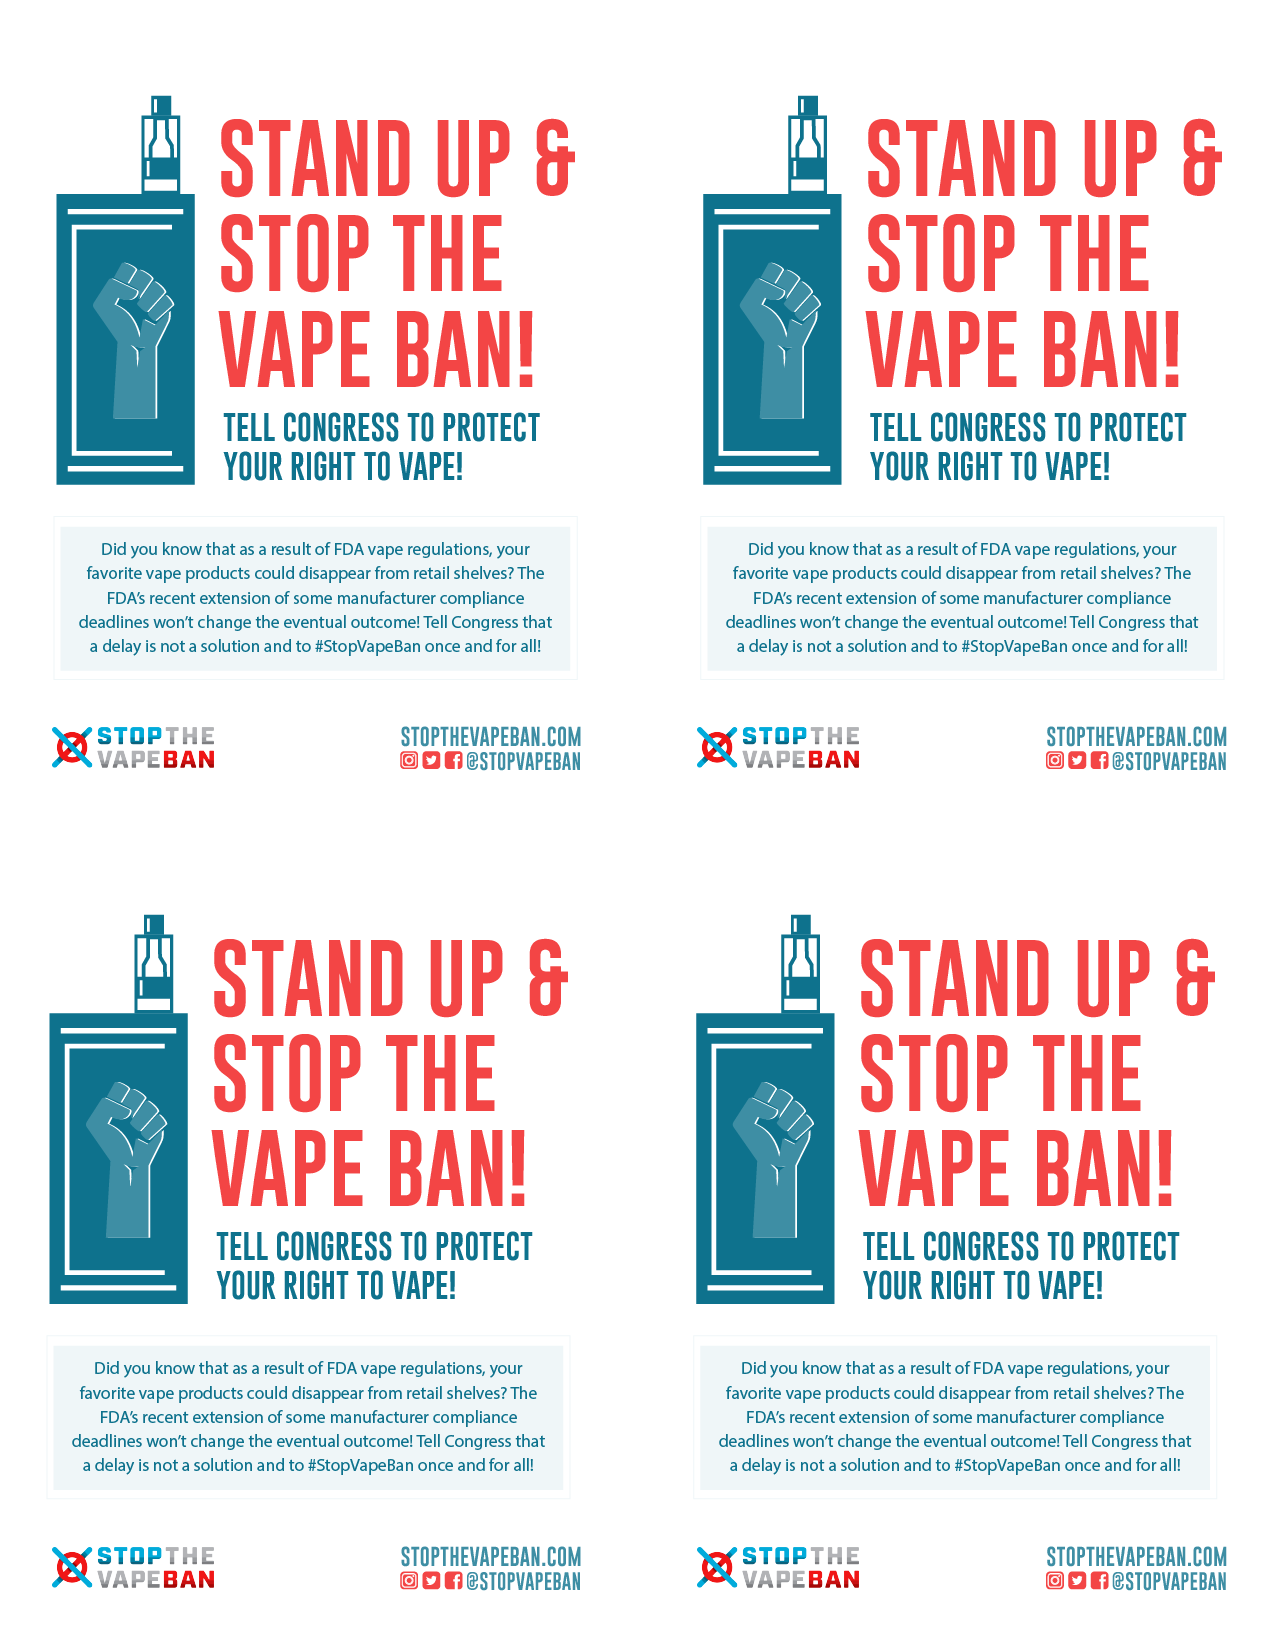 Stop the Vape Ban Posters: Print out and hang our posters